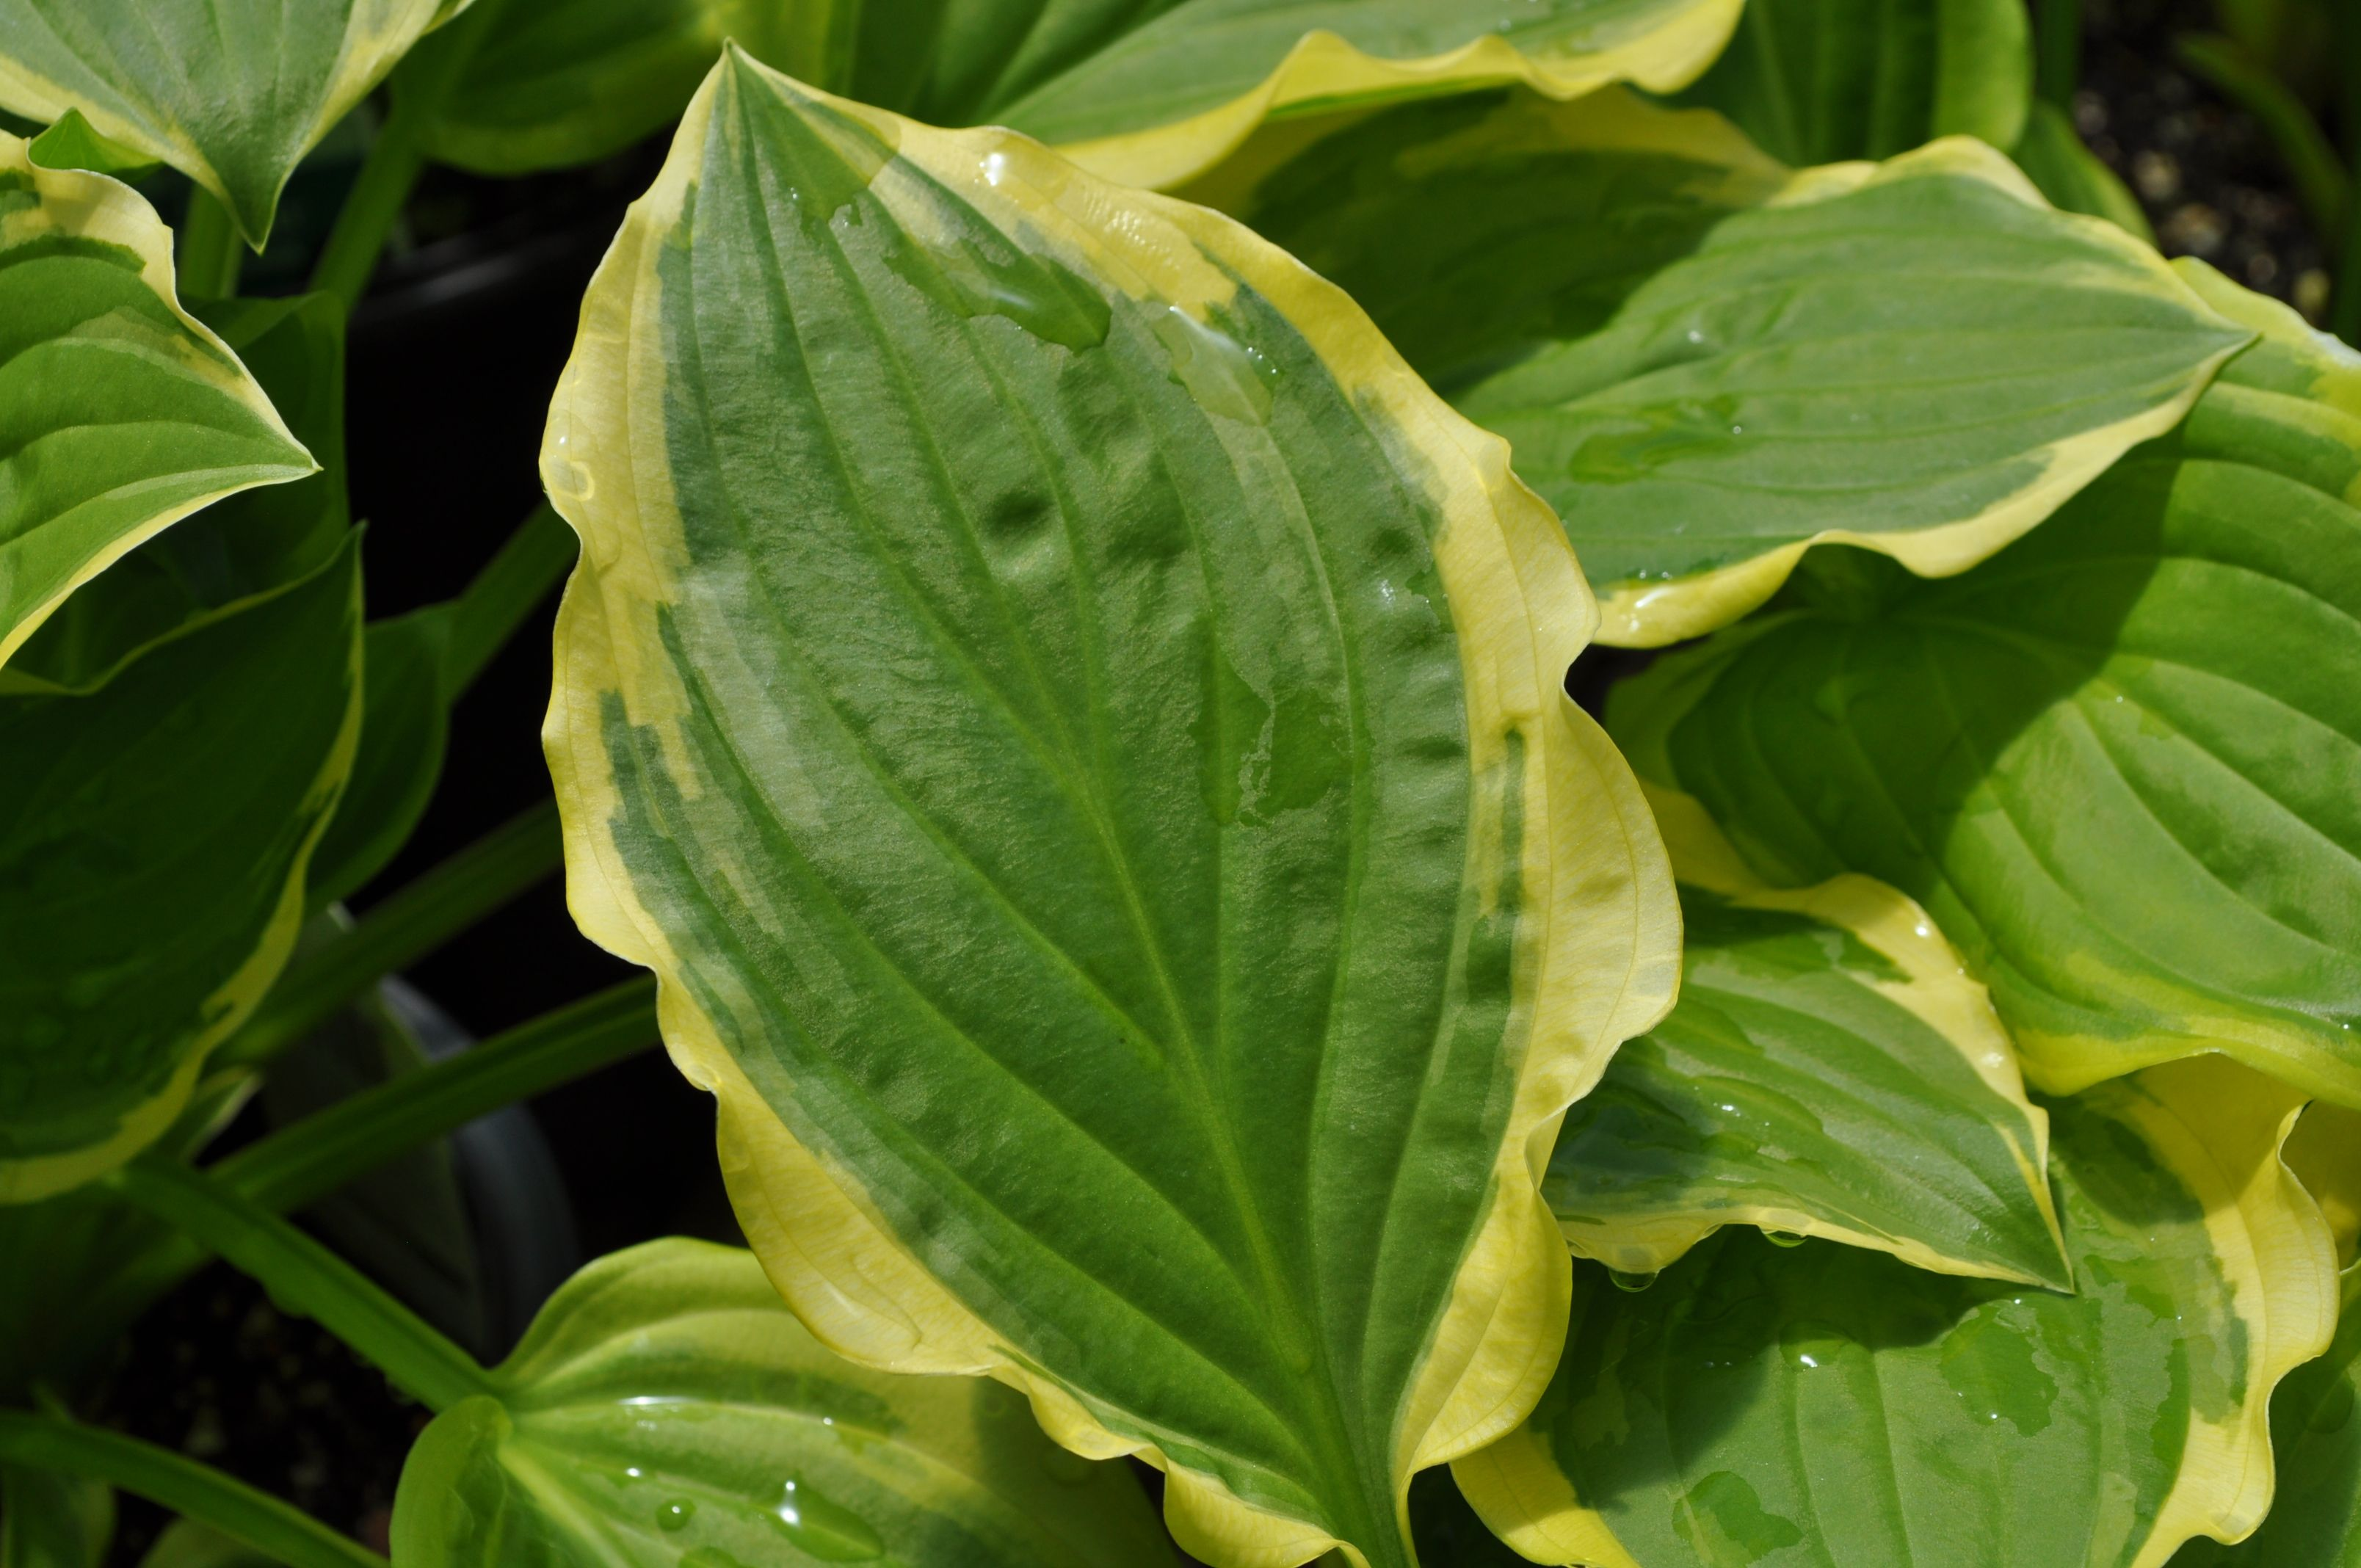 Hosta So Sweet Glossy Green Leaves With A Creamy White Margin